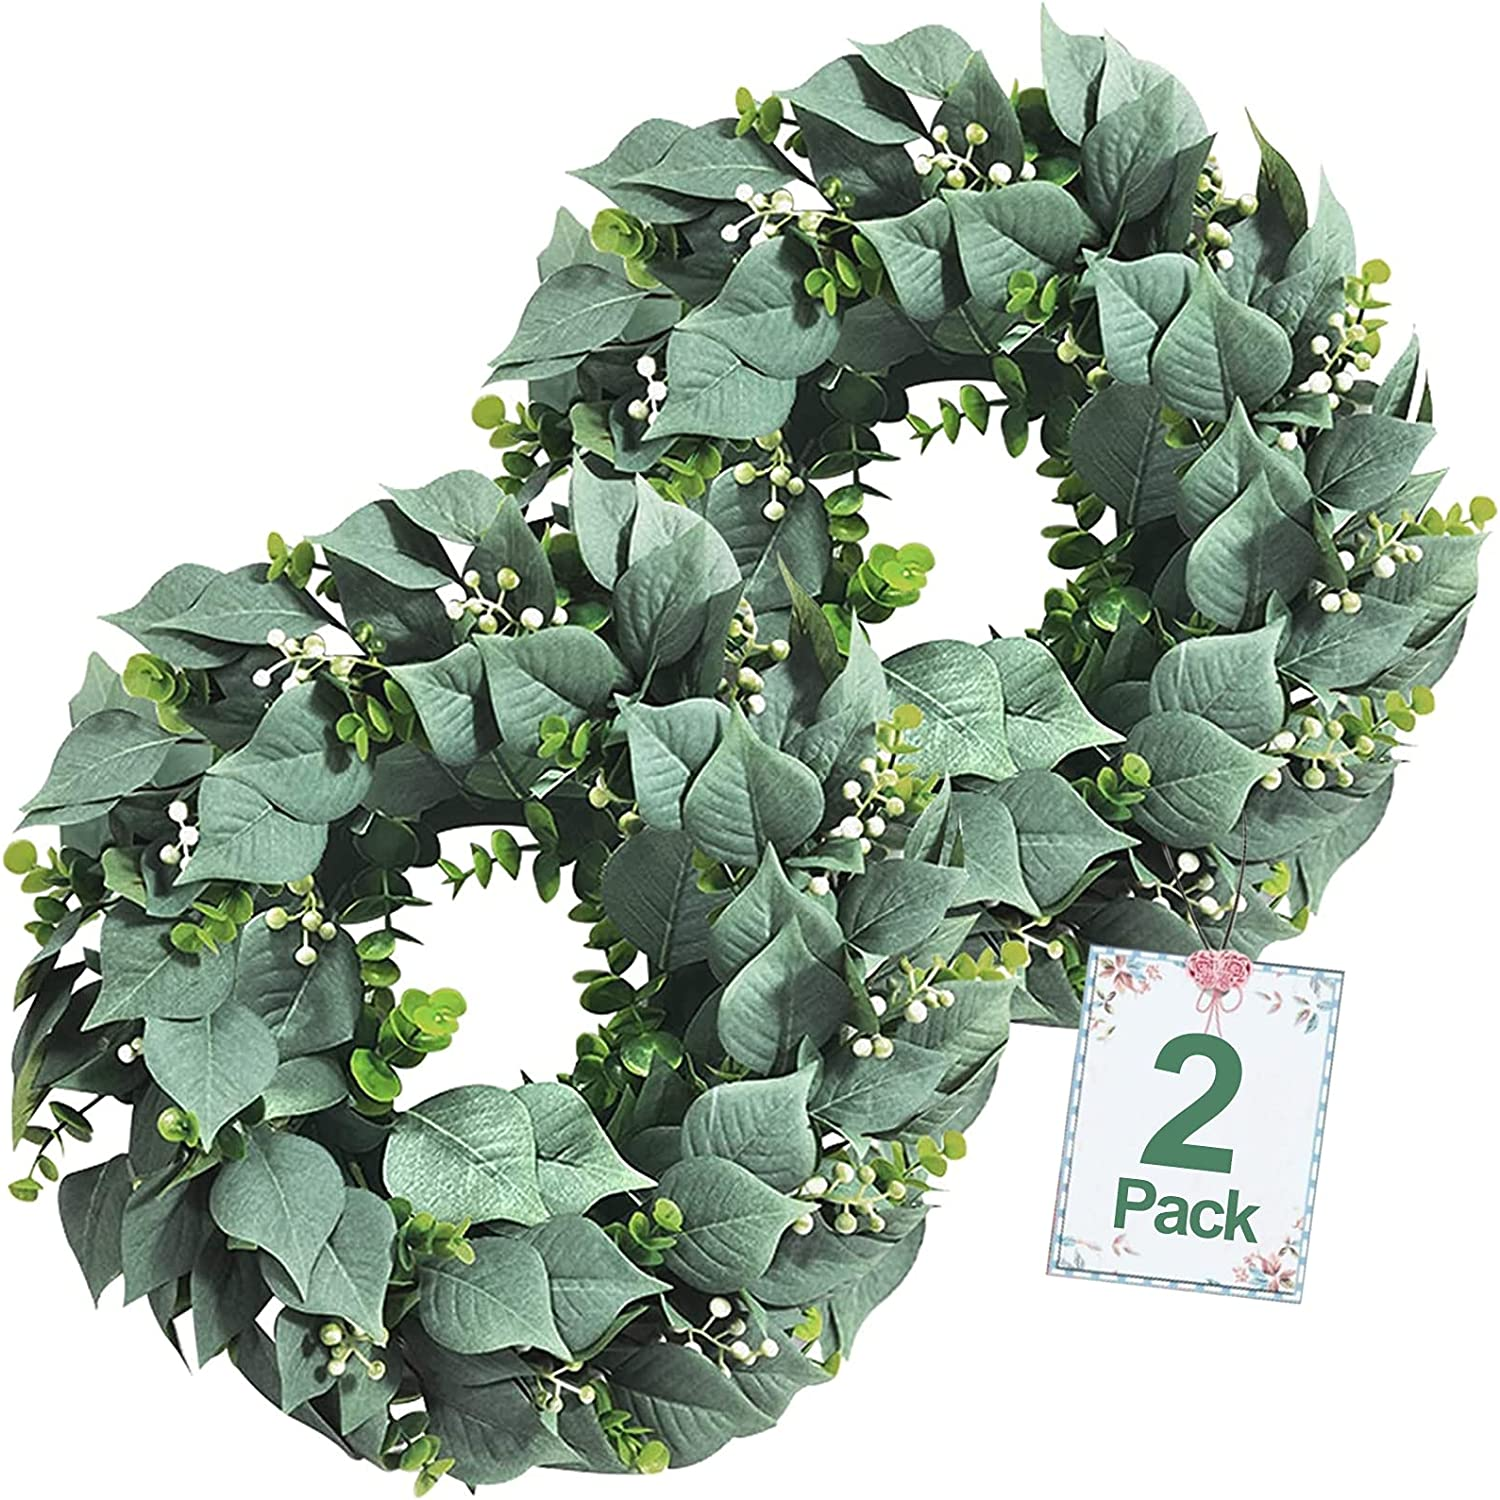 TURNMEON 2 Pack Artificial Eucalyptus Wreath for Front Door Decor, Greenery Leaves Wreath with Seeds Spring Wreath for Home Wall Window Porch Farmhouse Summer Decor